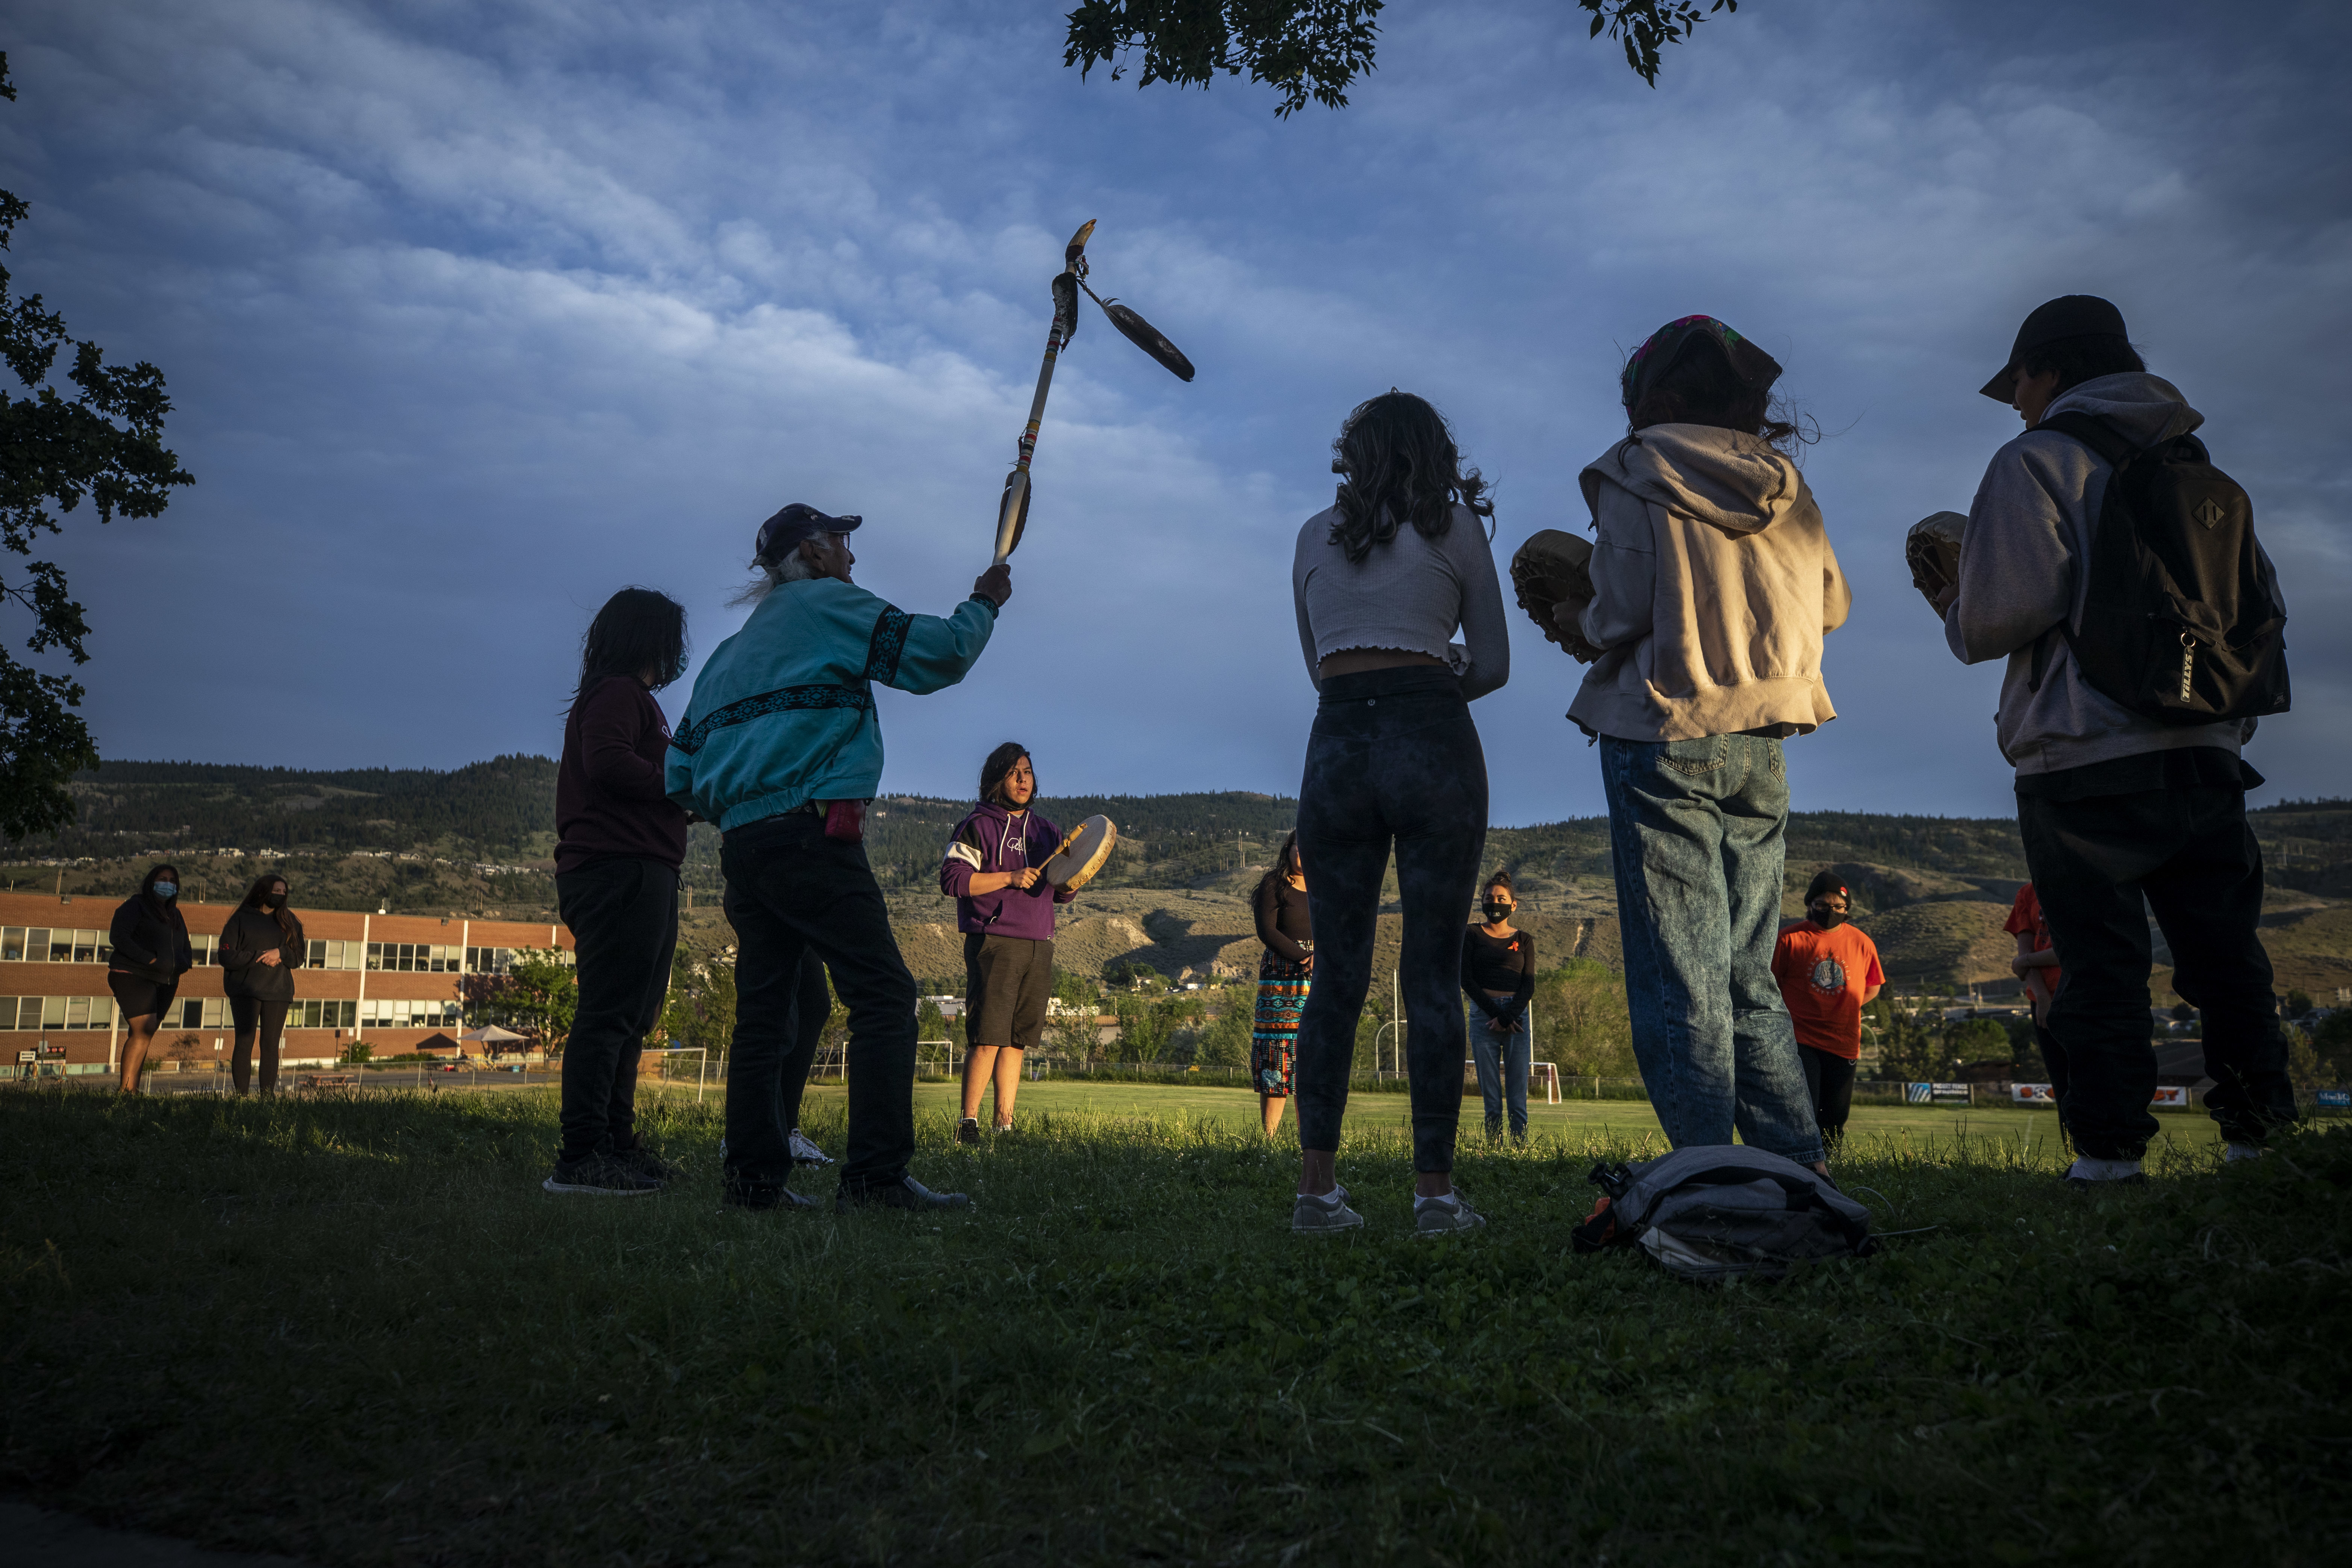 Kamloops Indian Residential School survivor Stanley Paul, 75, who was forced into the school at the age of seven, holds a walking stick in the air while Cash Charters sings and drums with a group of youths at a monument outside the former school.